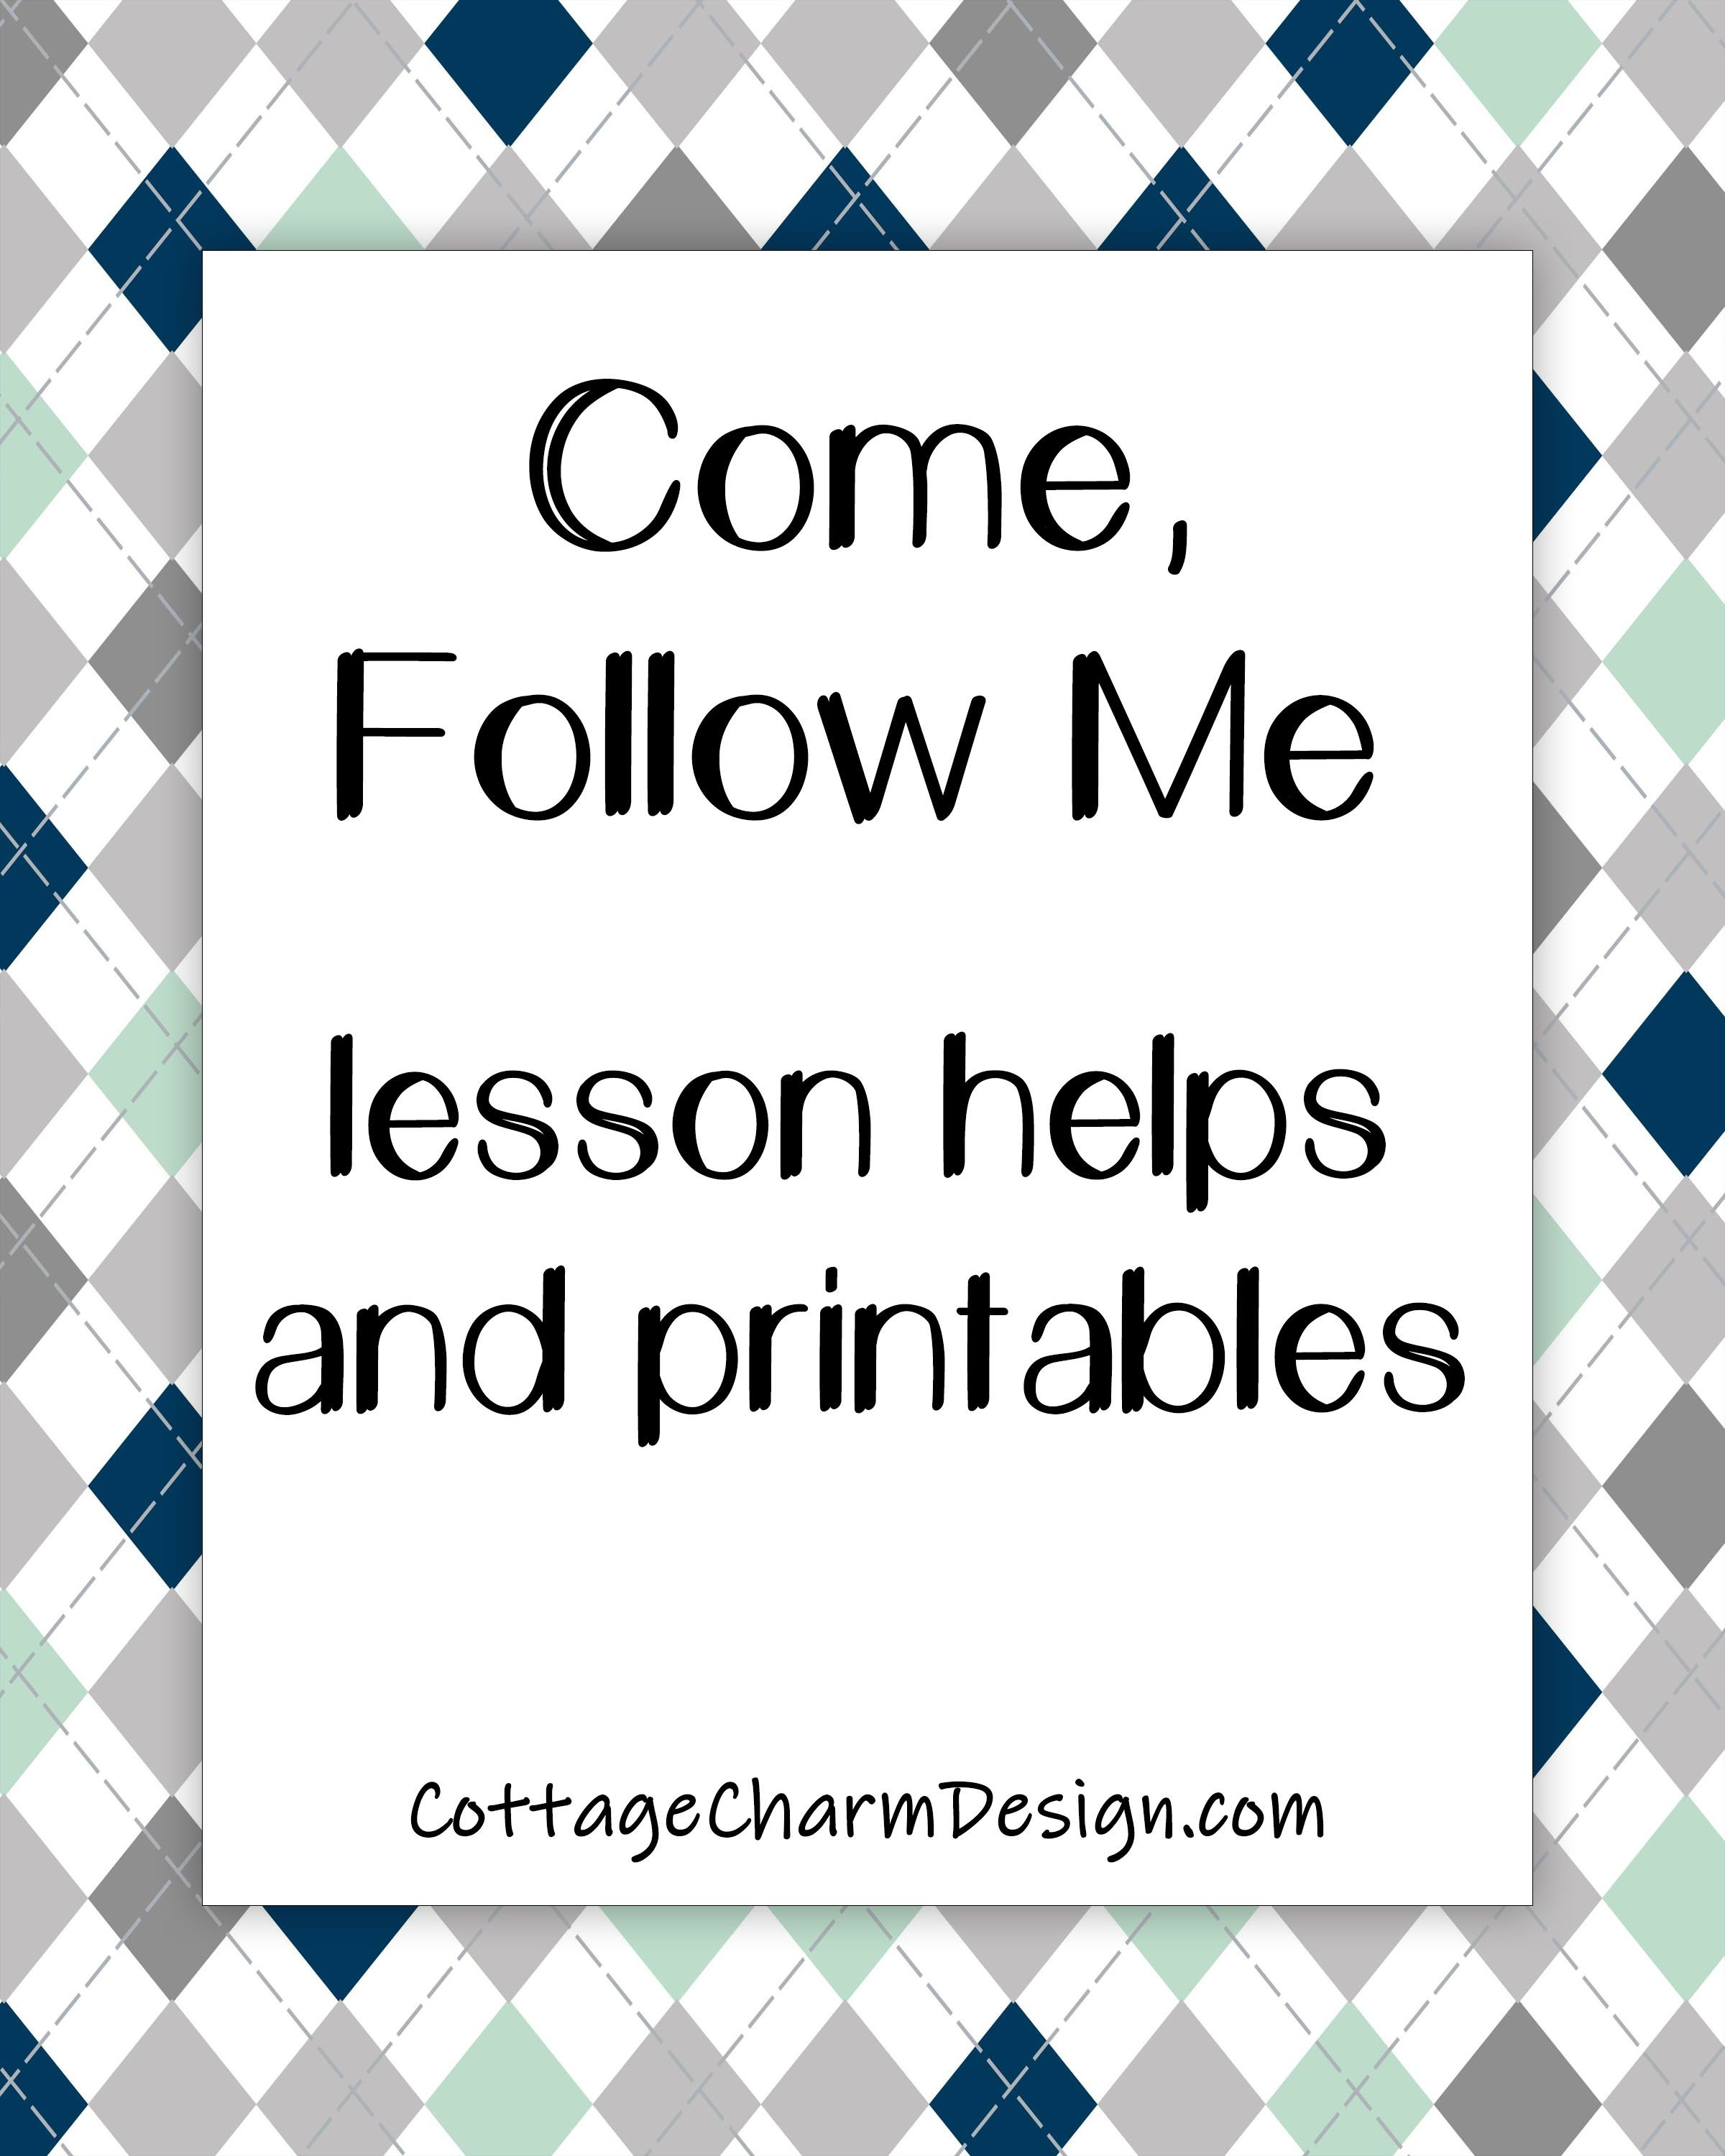 Awesome lesson helps and printable handouts.